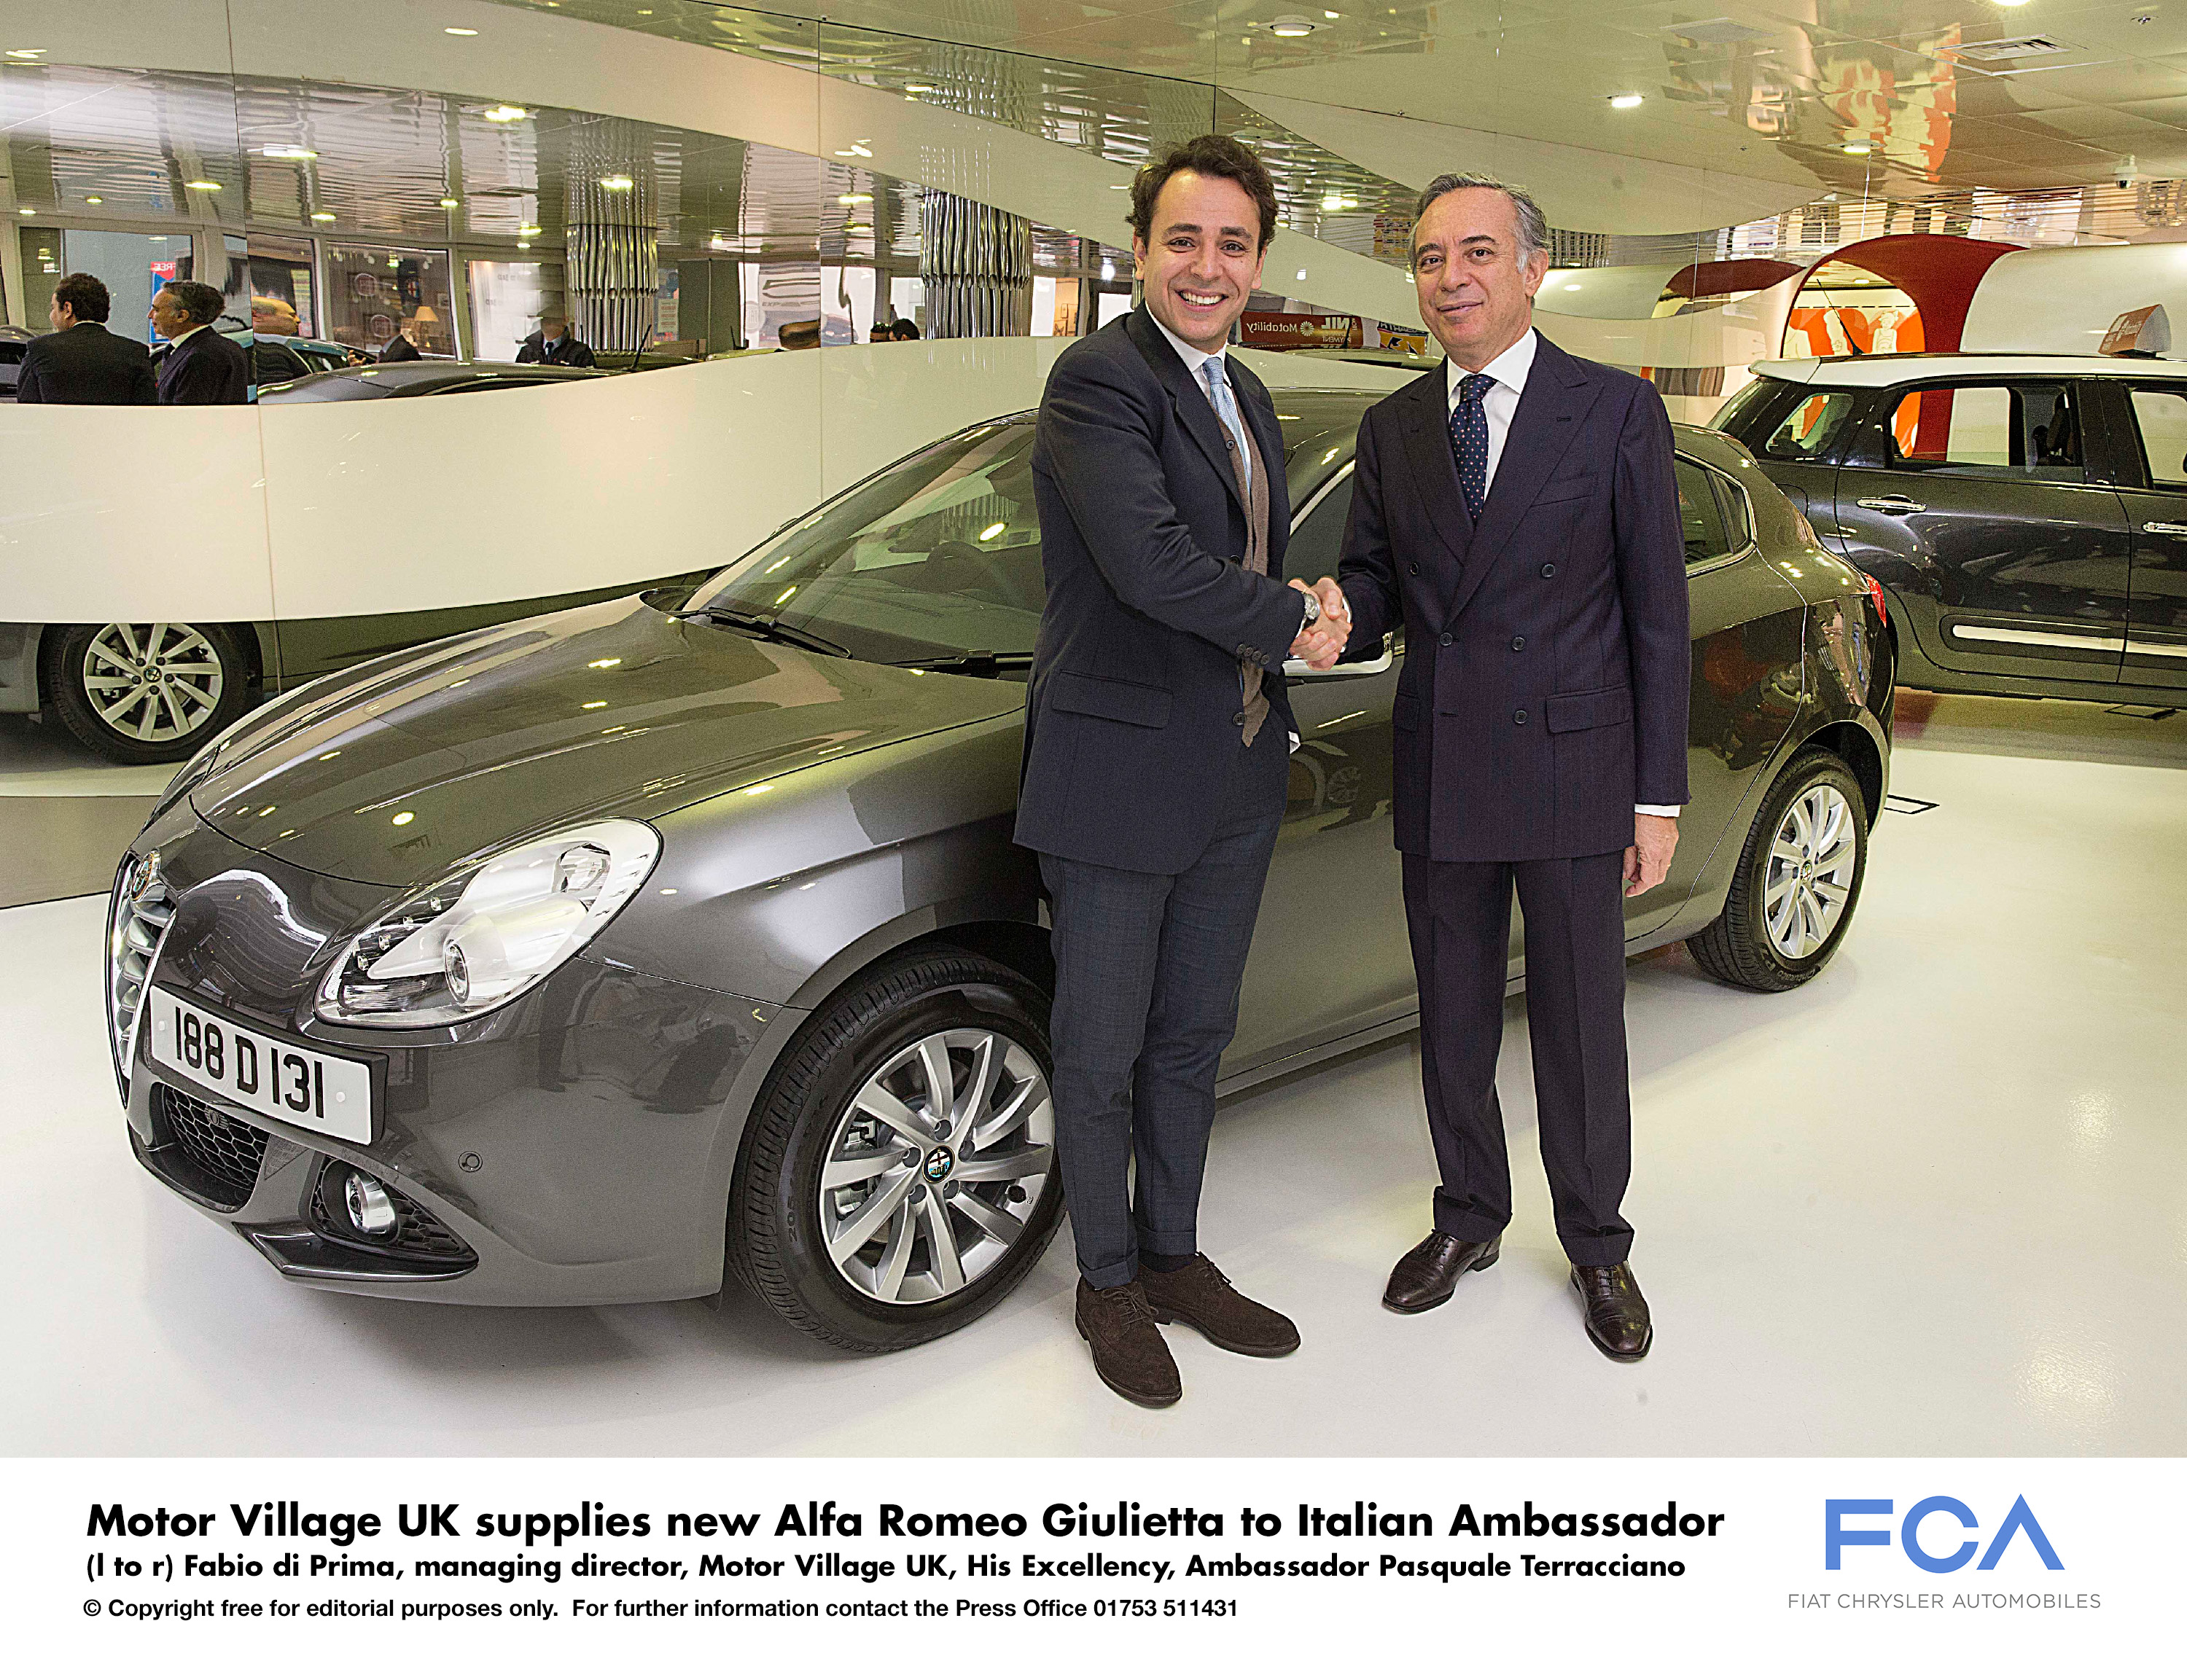 Motor Village Uk Supplies New Alfa Romeo Giulietta To